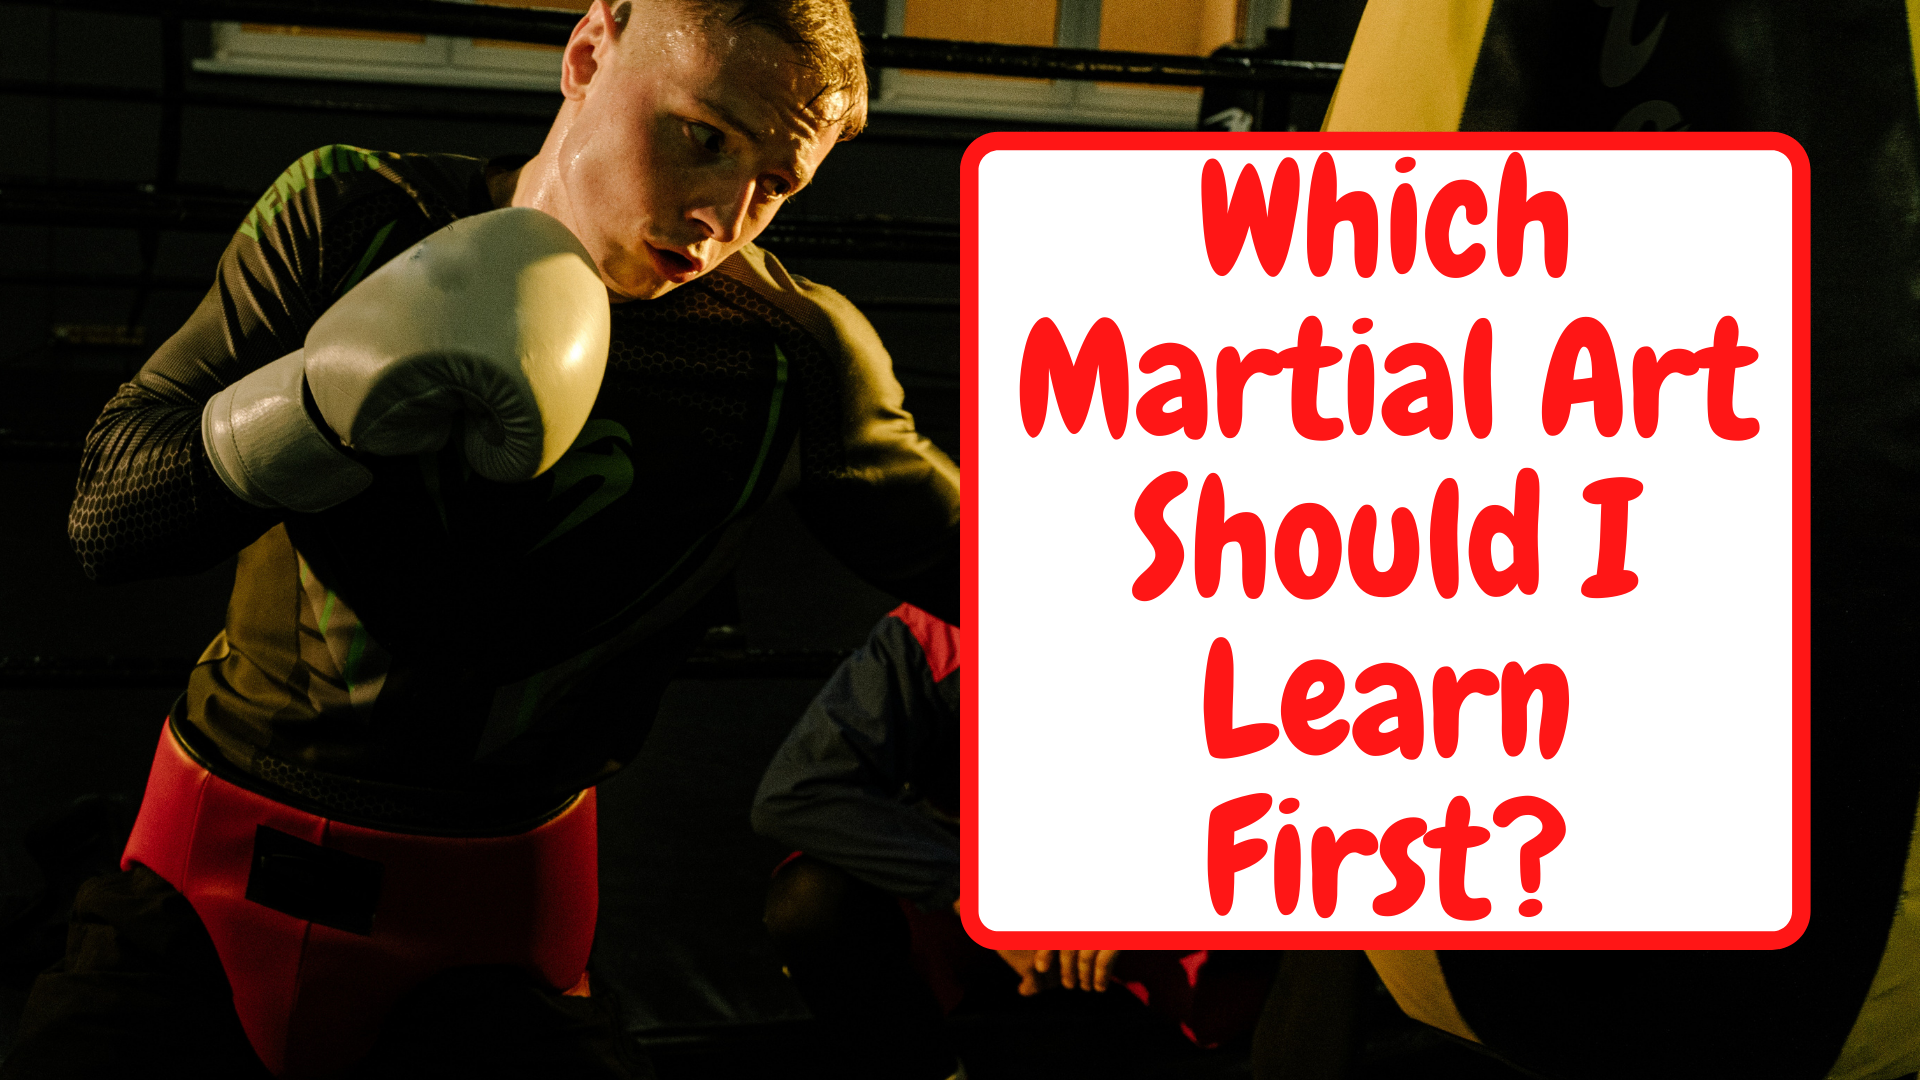 Which Martial Art Should I Learn First